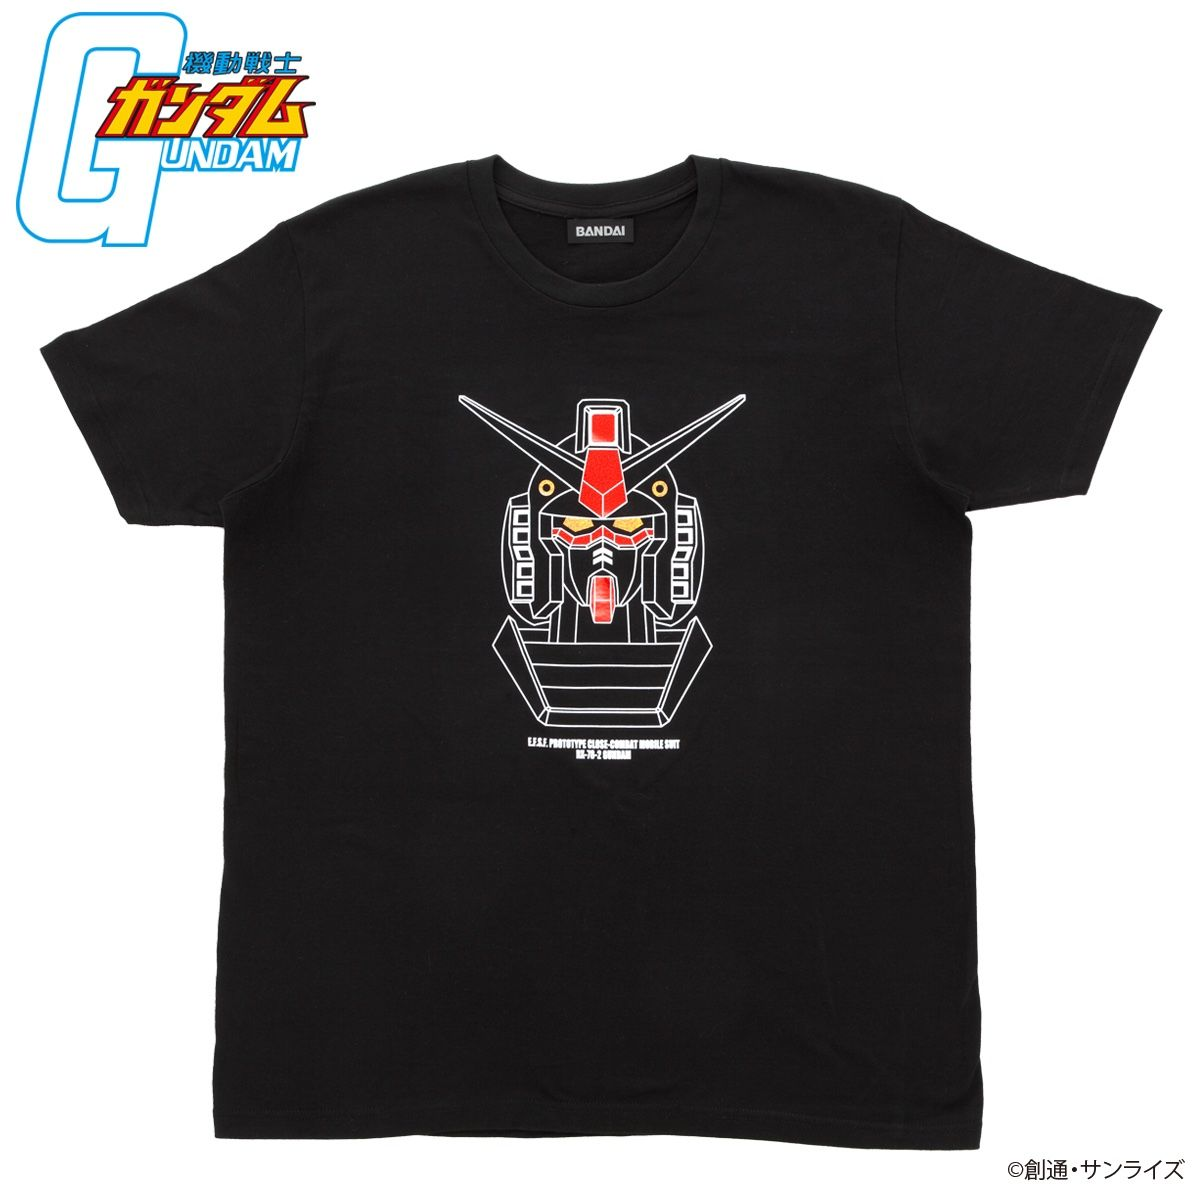 Mobile Suit Gundam Hologram Tshirt